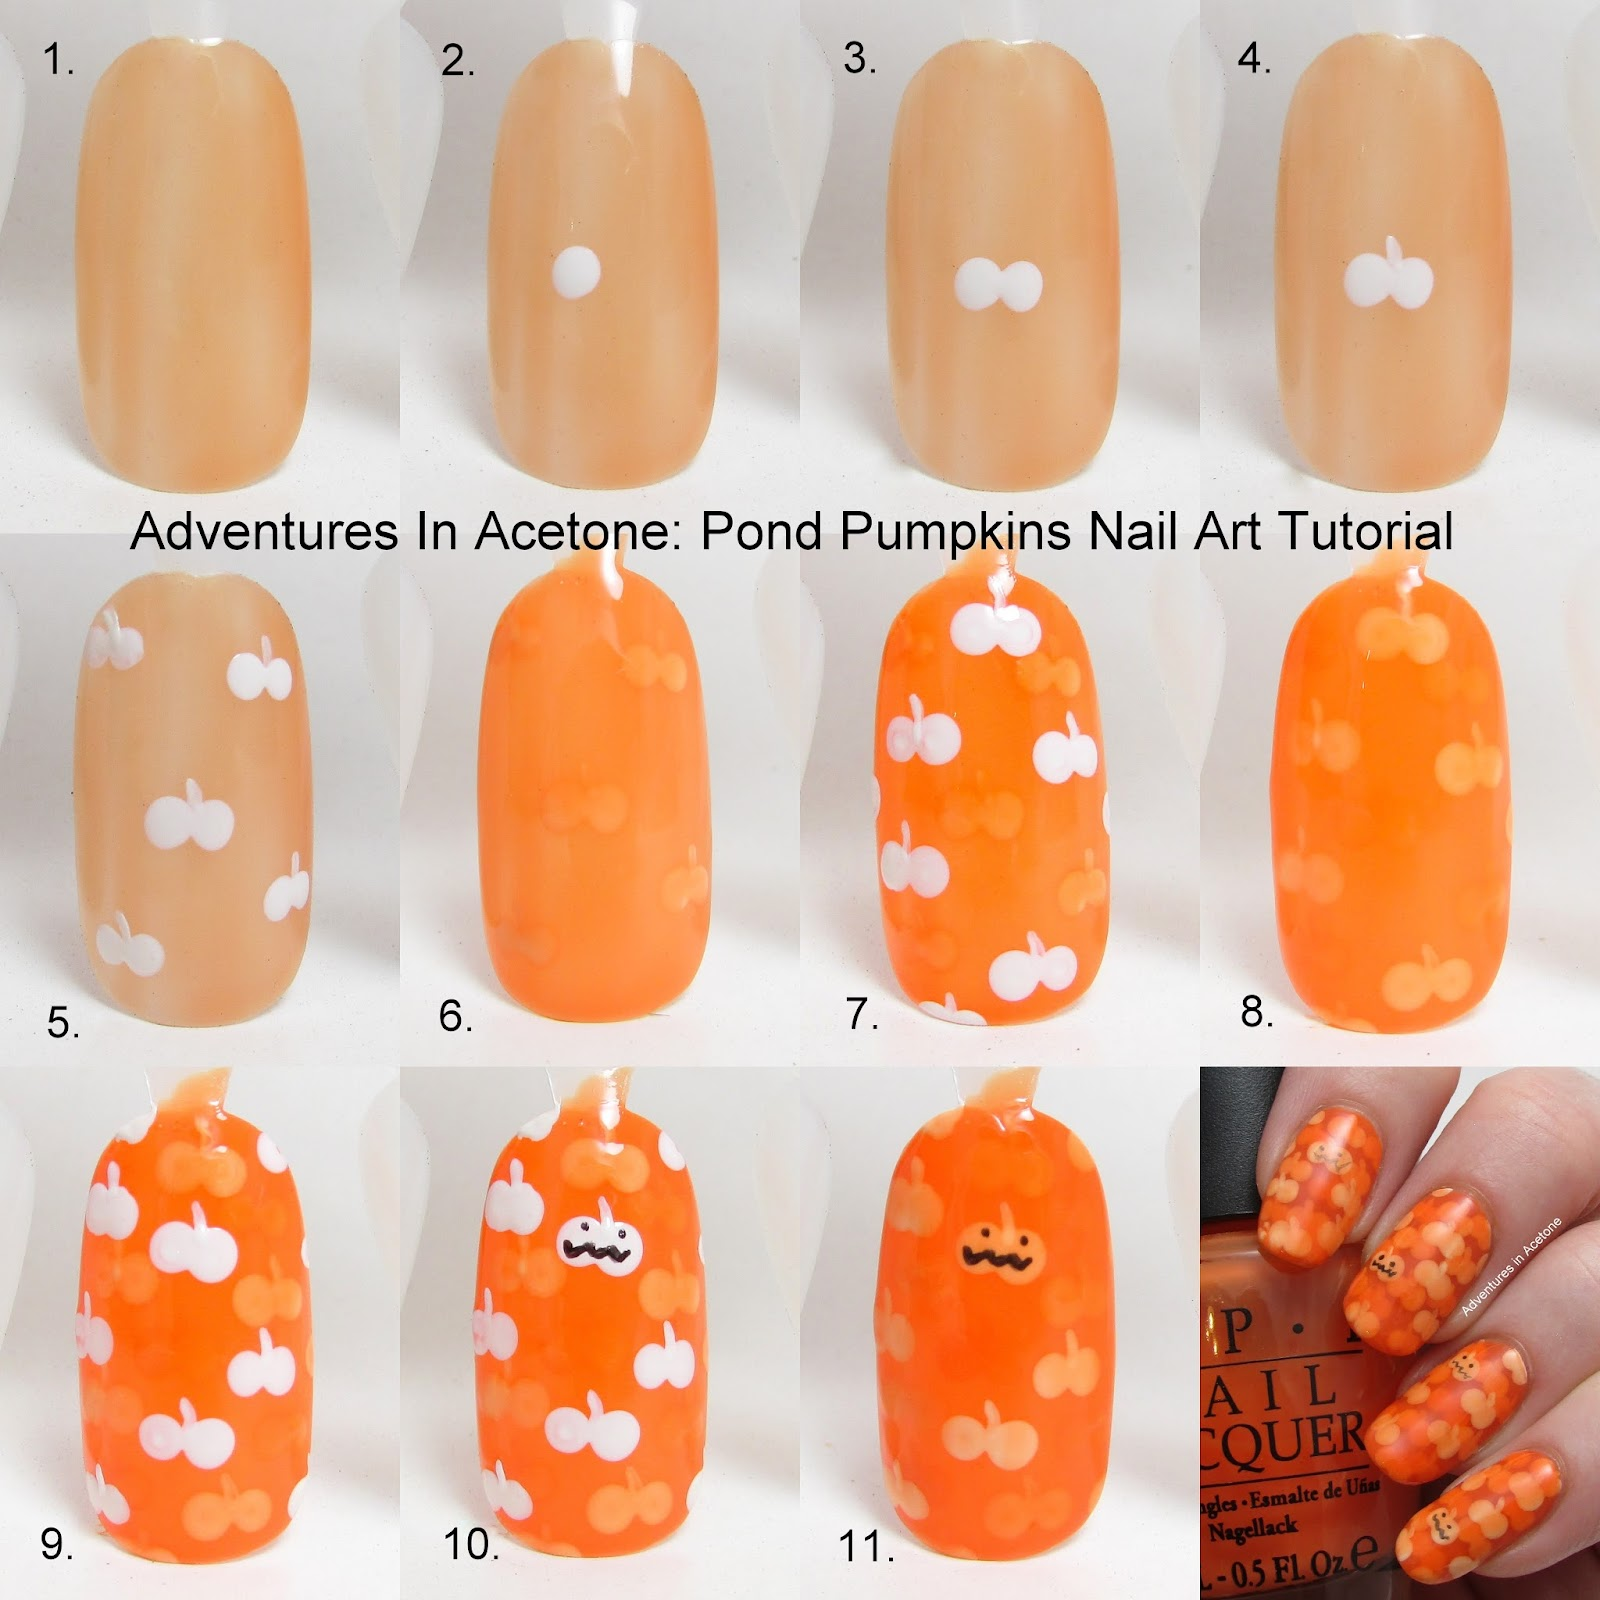 Tutorial tuesday pond pumpkins nail art adventures in acetone here is a picture of the original mani prinsesfo Choice Image